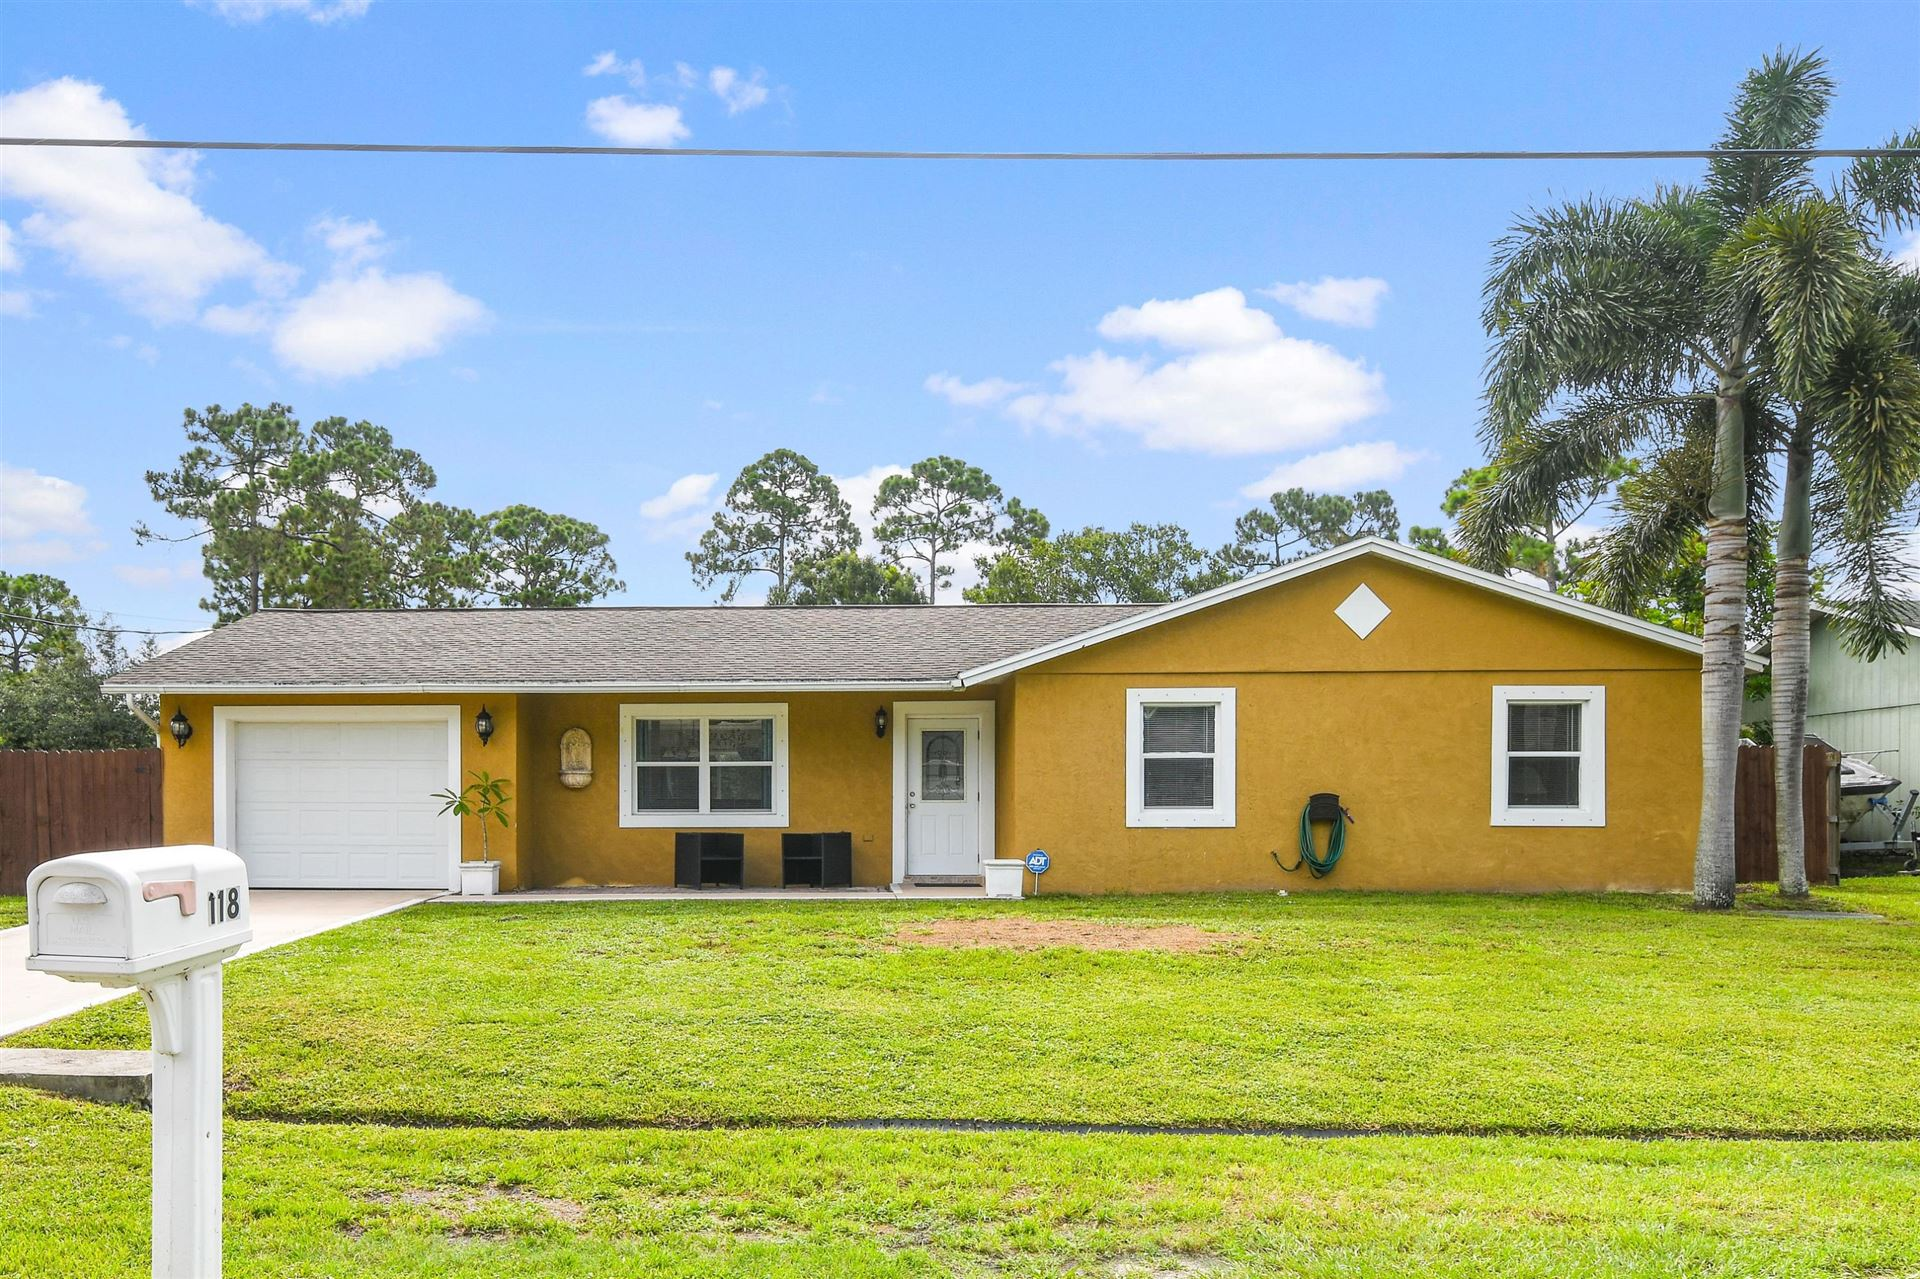 118 SE Crosspoint Drive, Port Saint Lucie, FL 34983 - #: RX-10640693